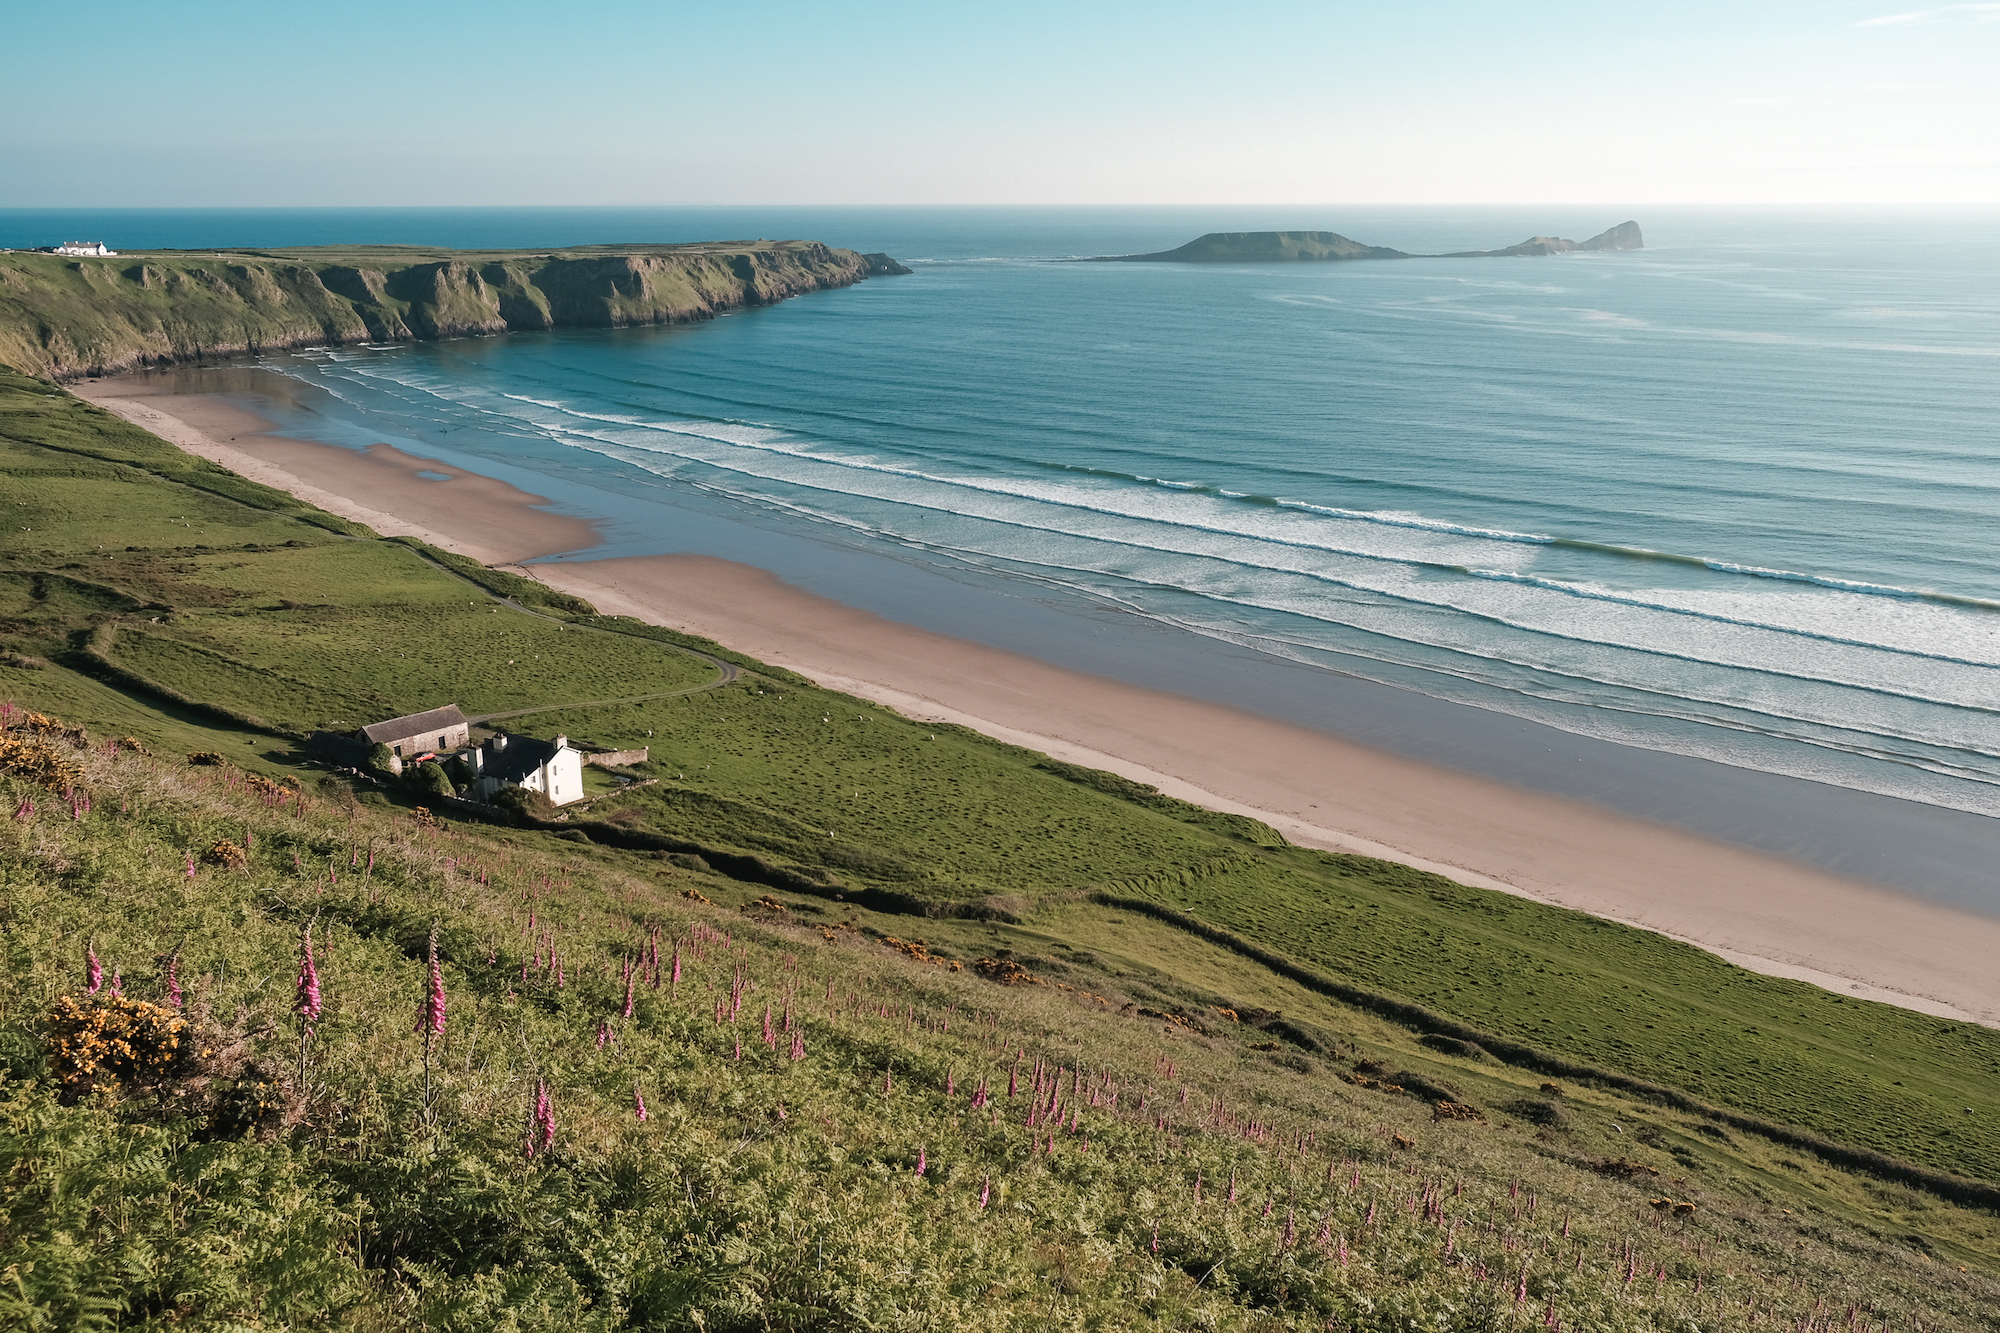 Rhossili Bay, Gower Peninsula, South Wales, Swansea - by Ben Holbrook-14